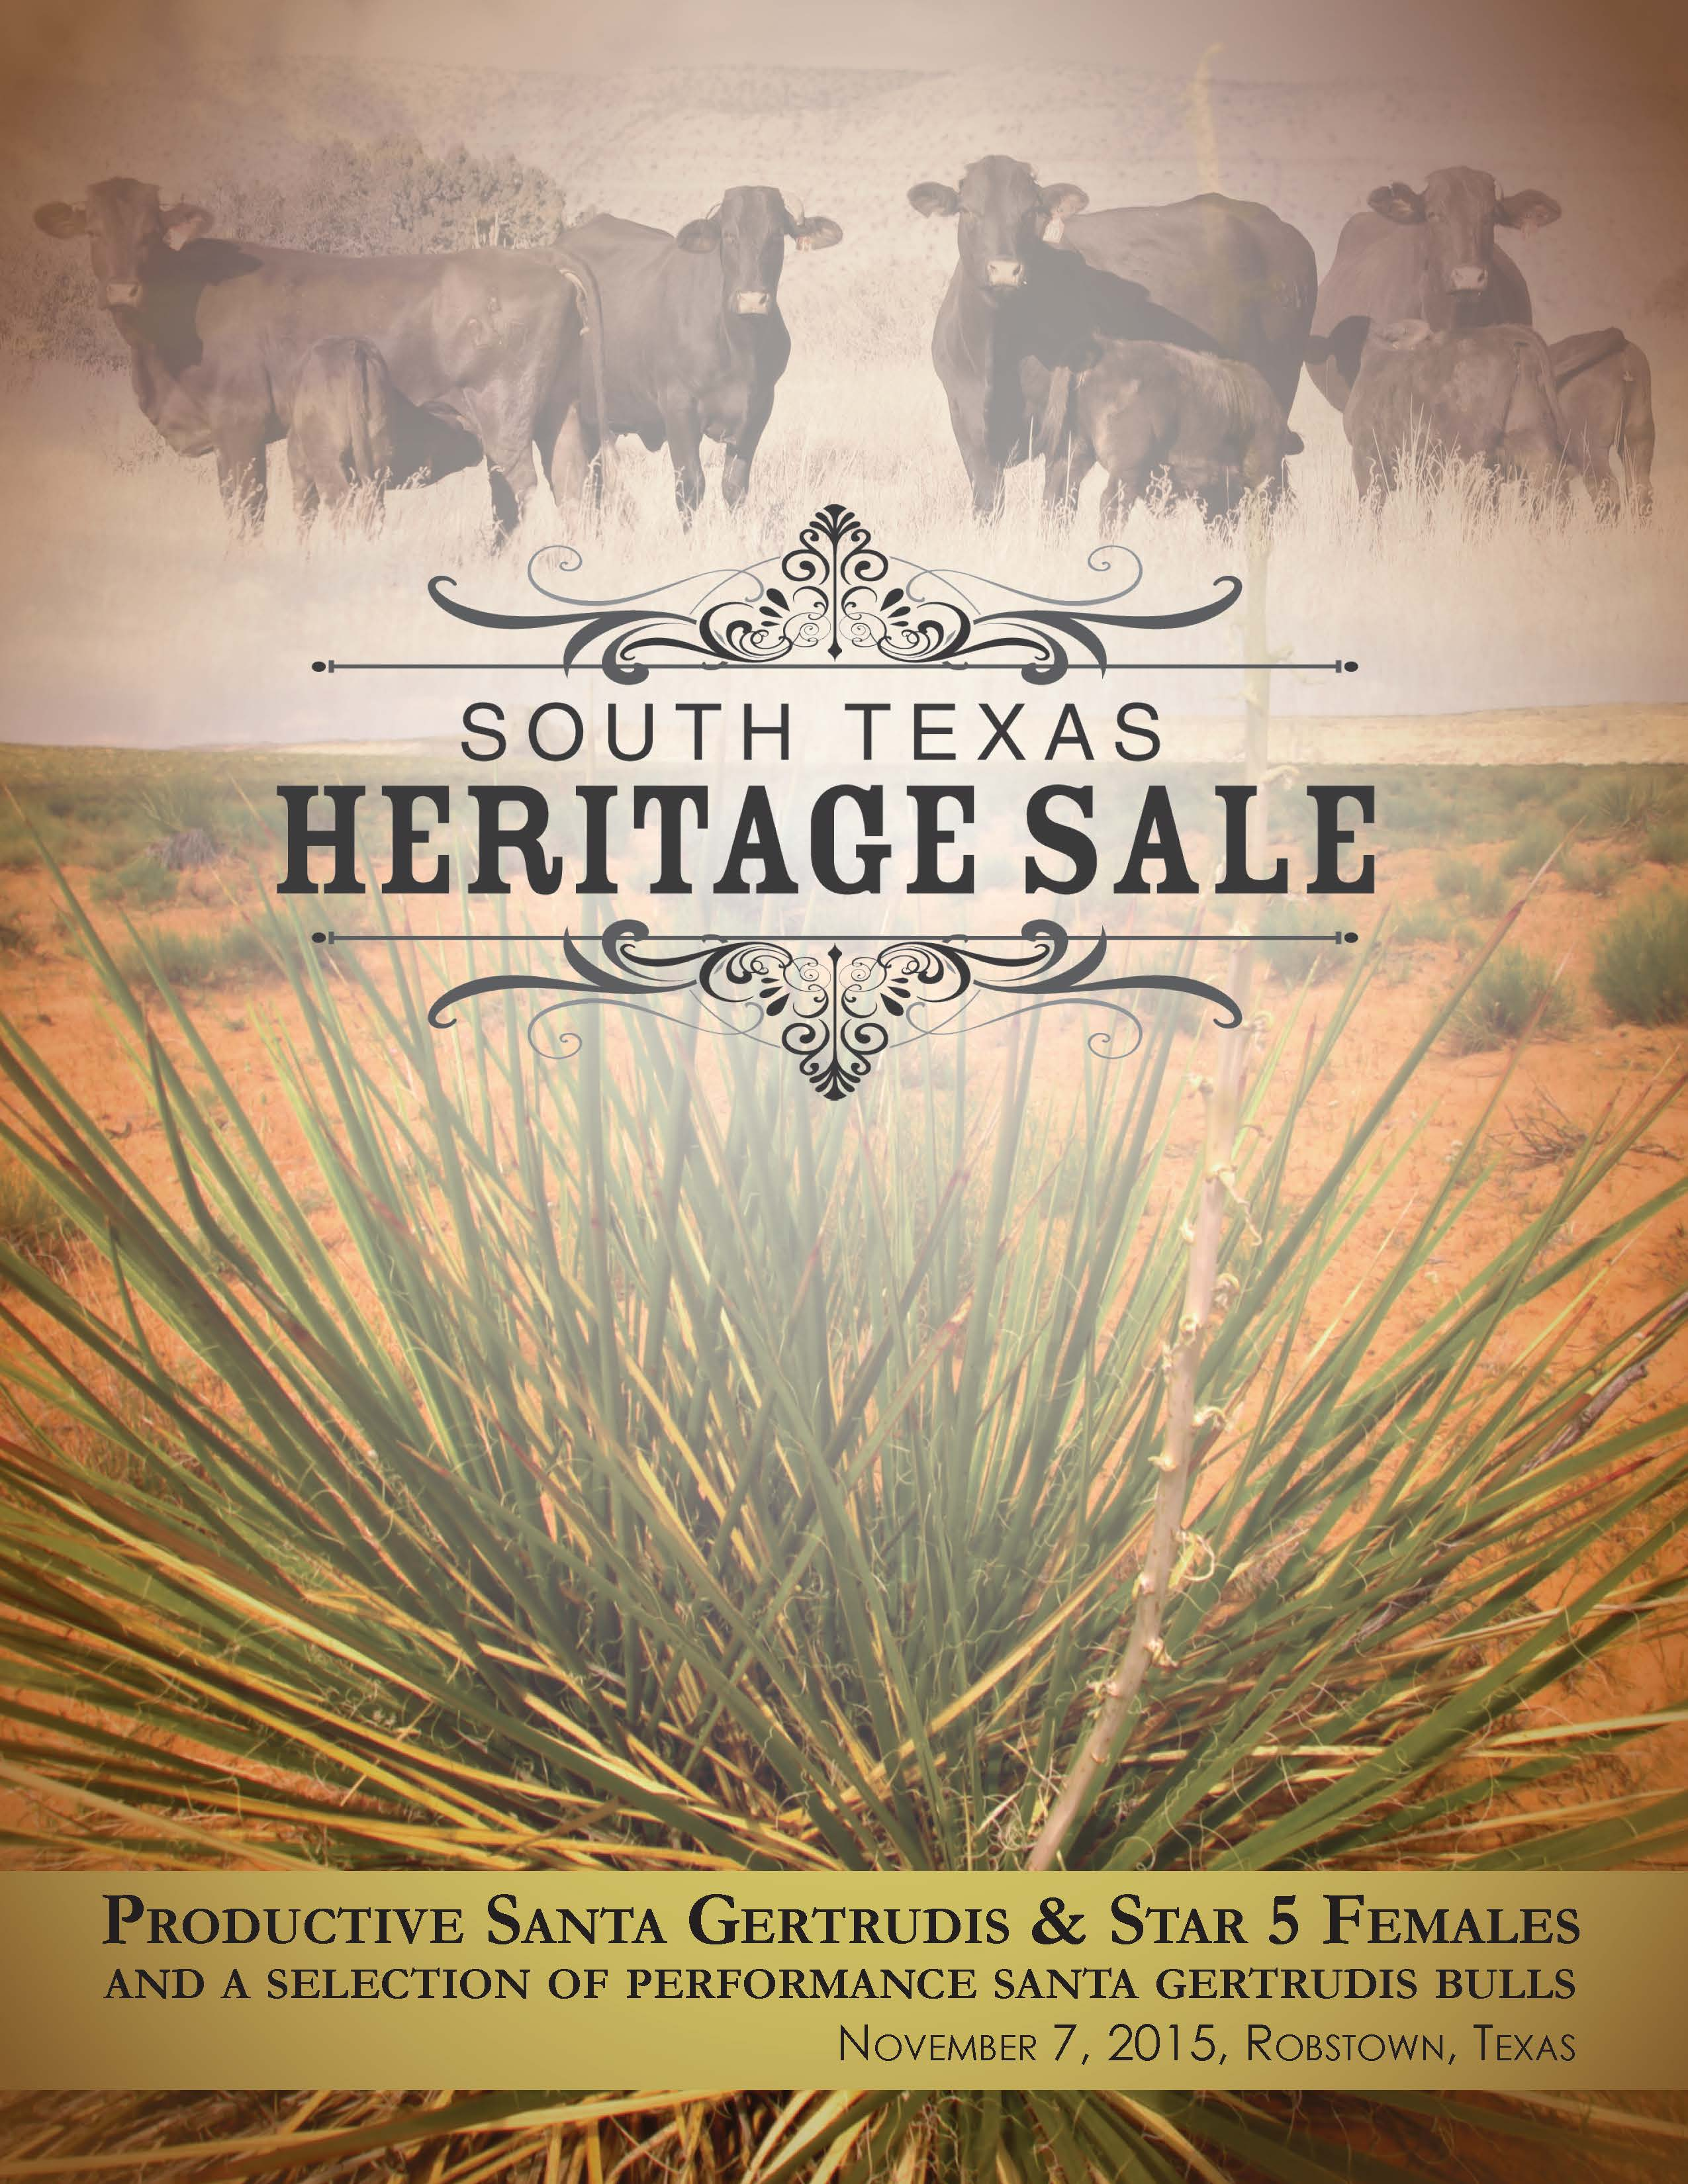 South Texas Heritage